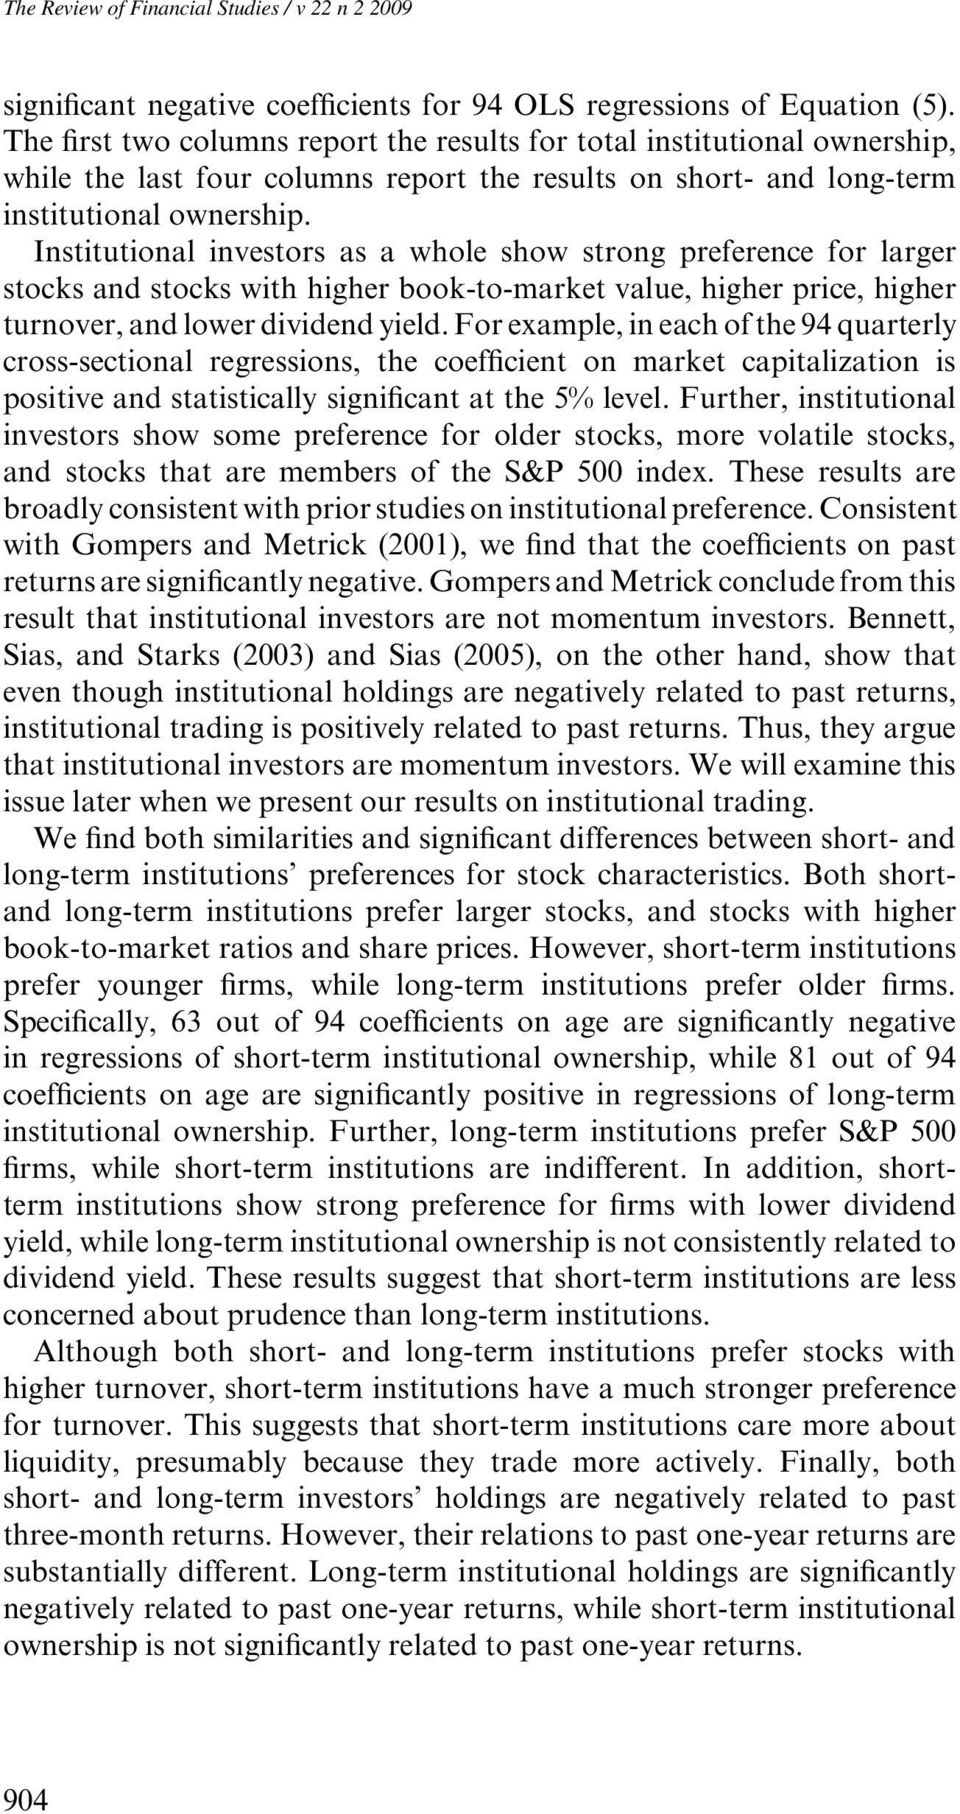 Institutional investors as a whole show strong preference for larger stocks and stocks with higher book-to-market value, higher price, higher turnover, and lower dividend yield.